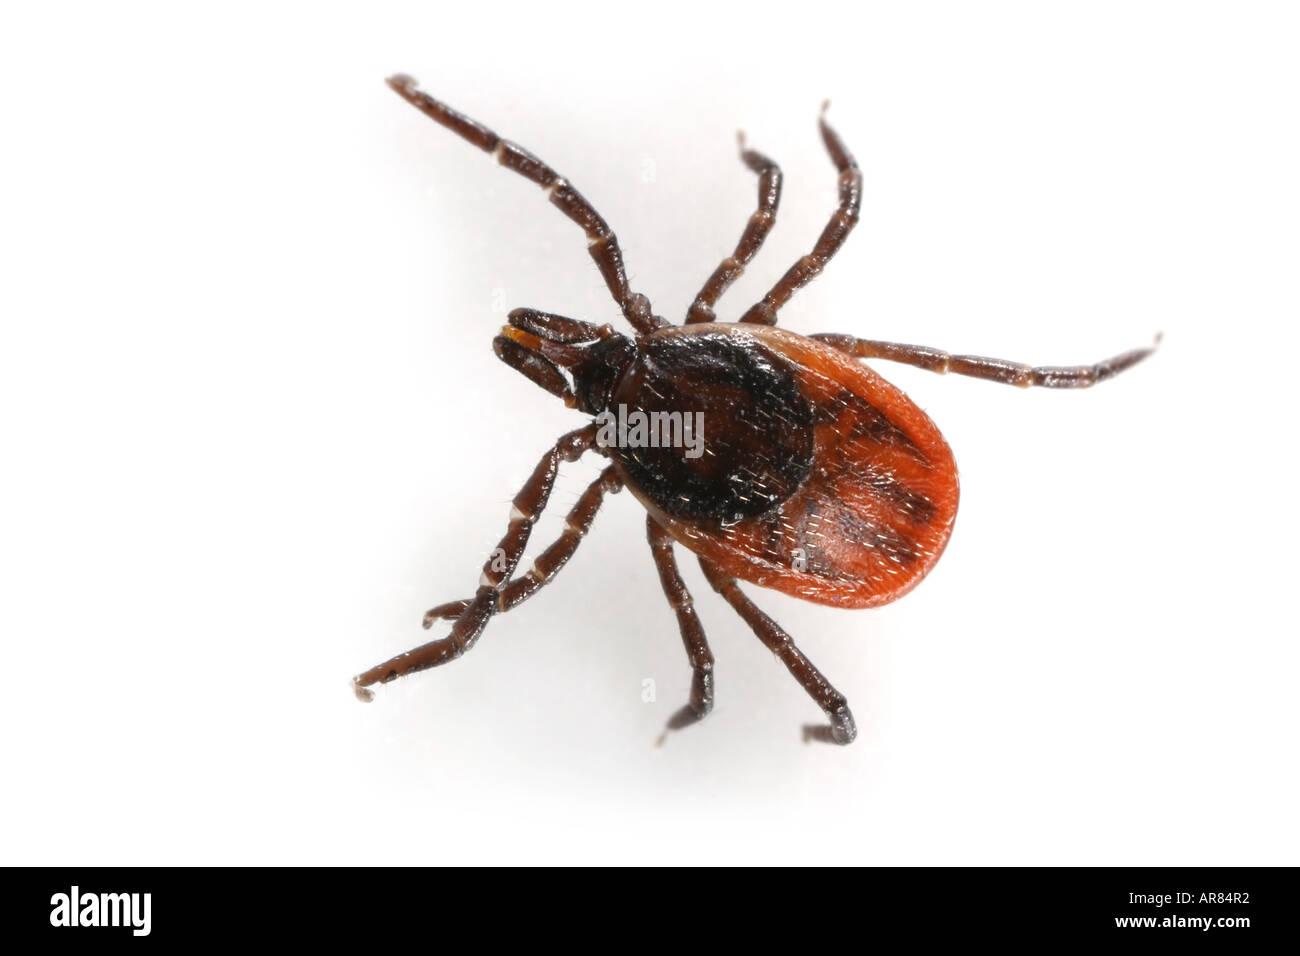 Close up of a red adult female tick on white background Stock Photo